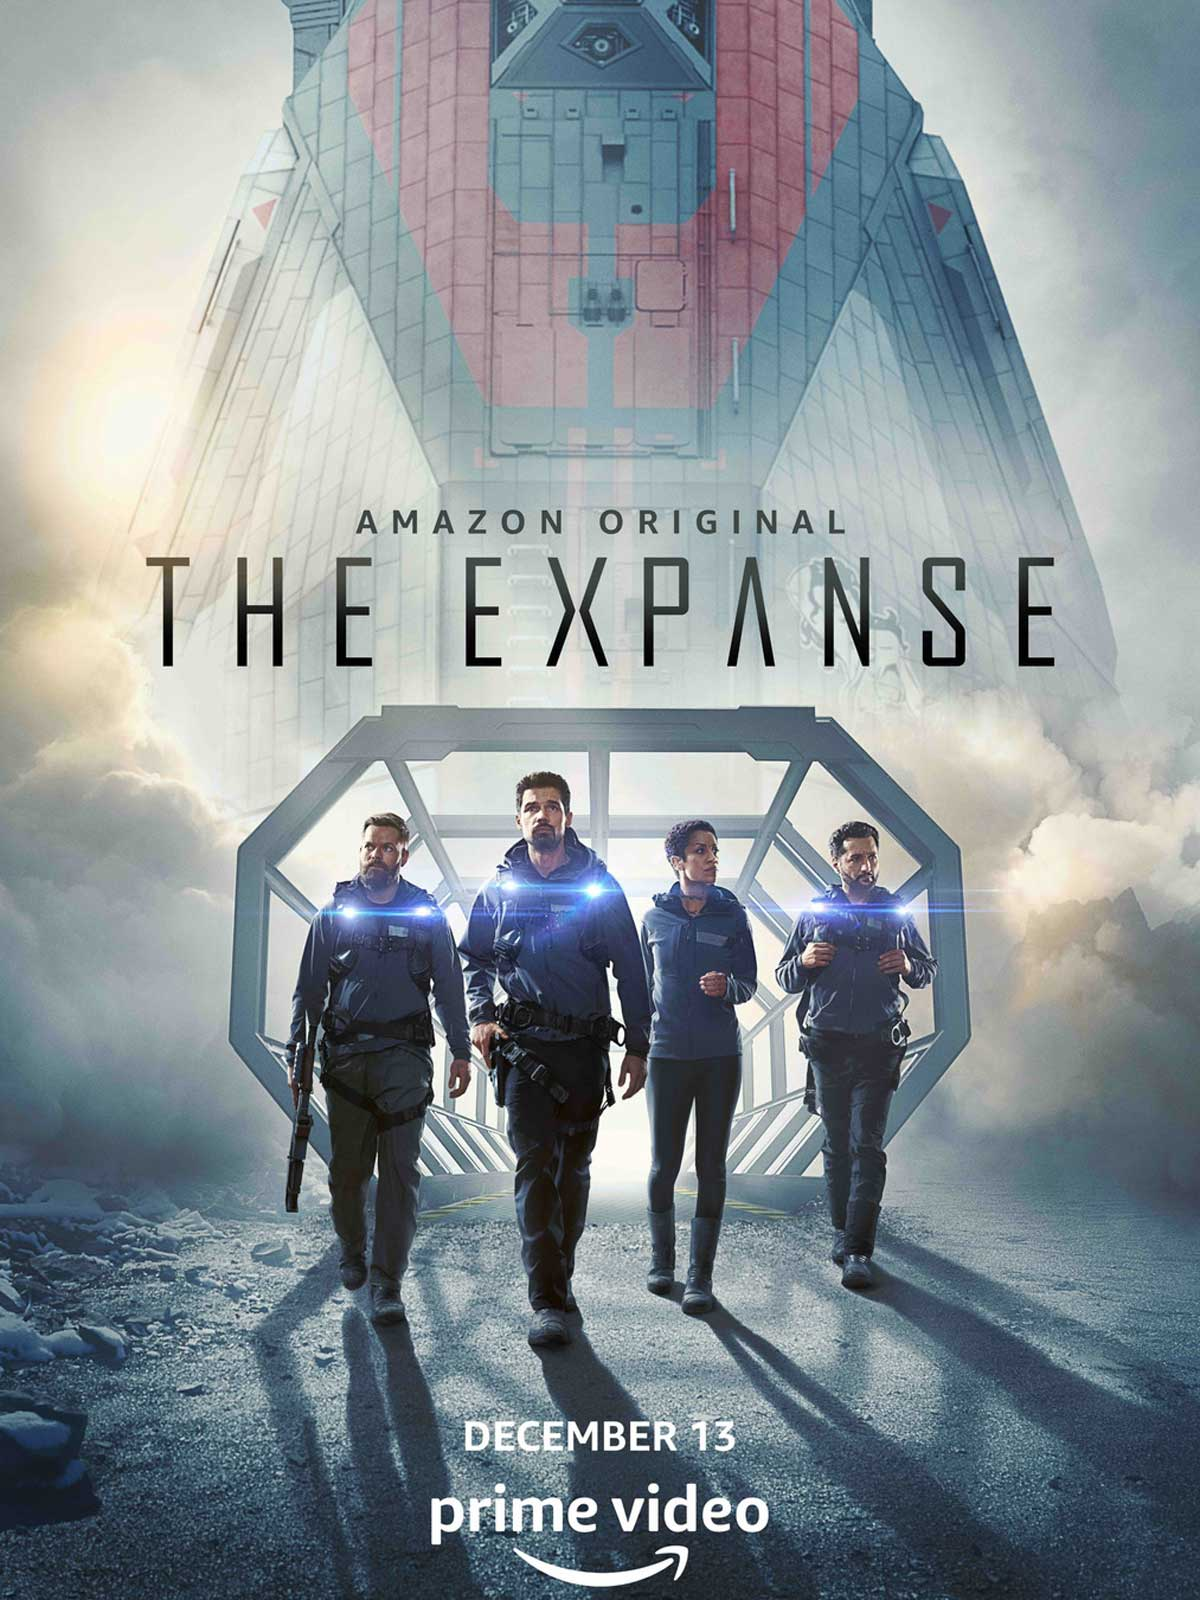 10 - The Expanse